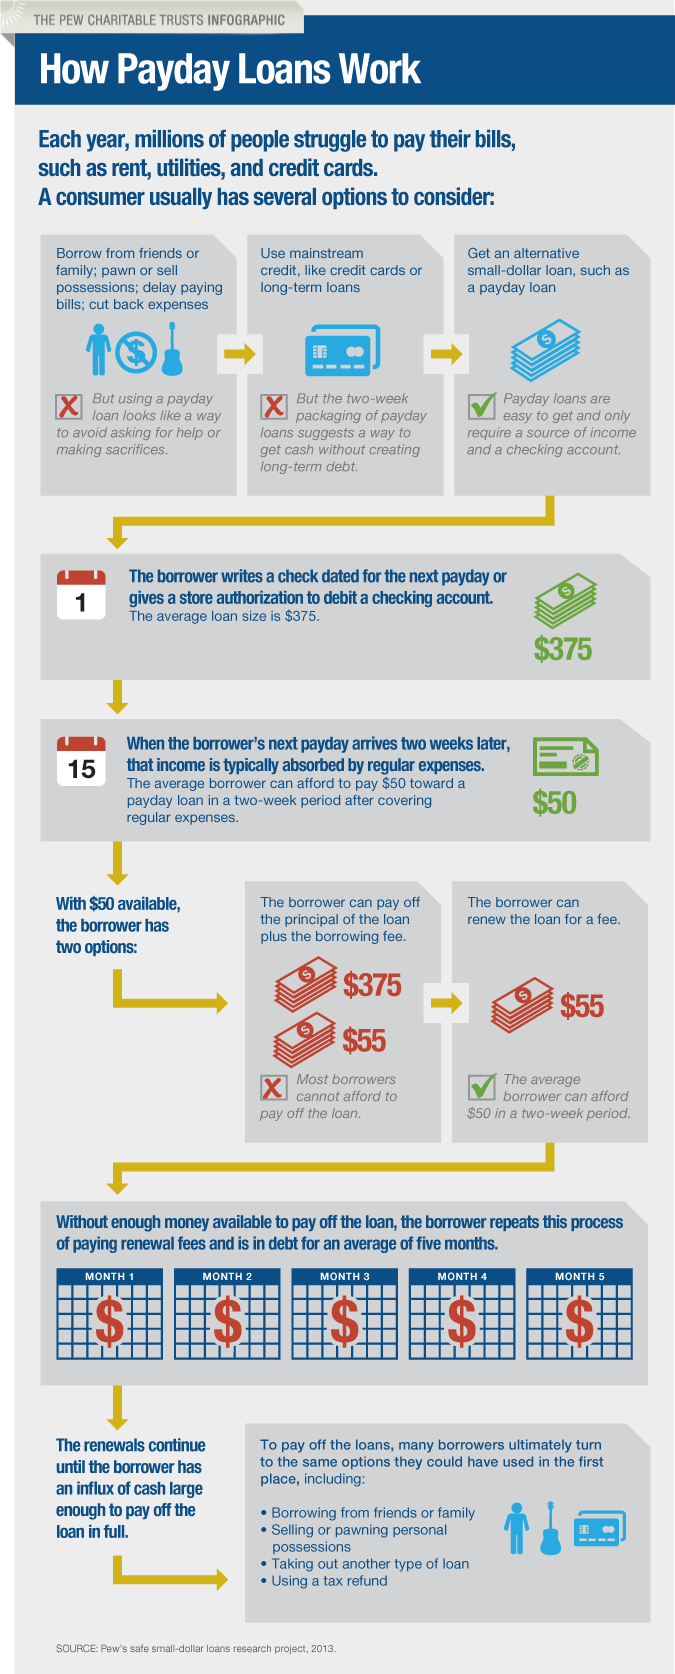 How Payday Lenders Work